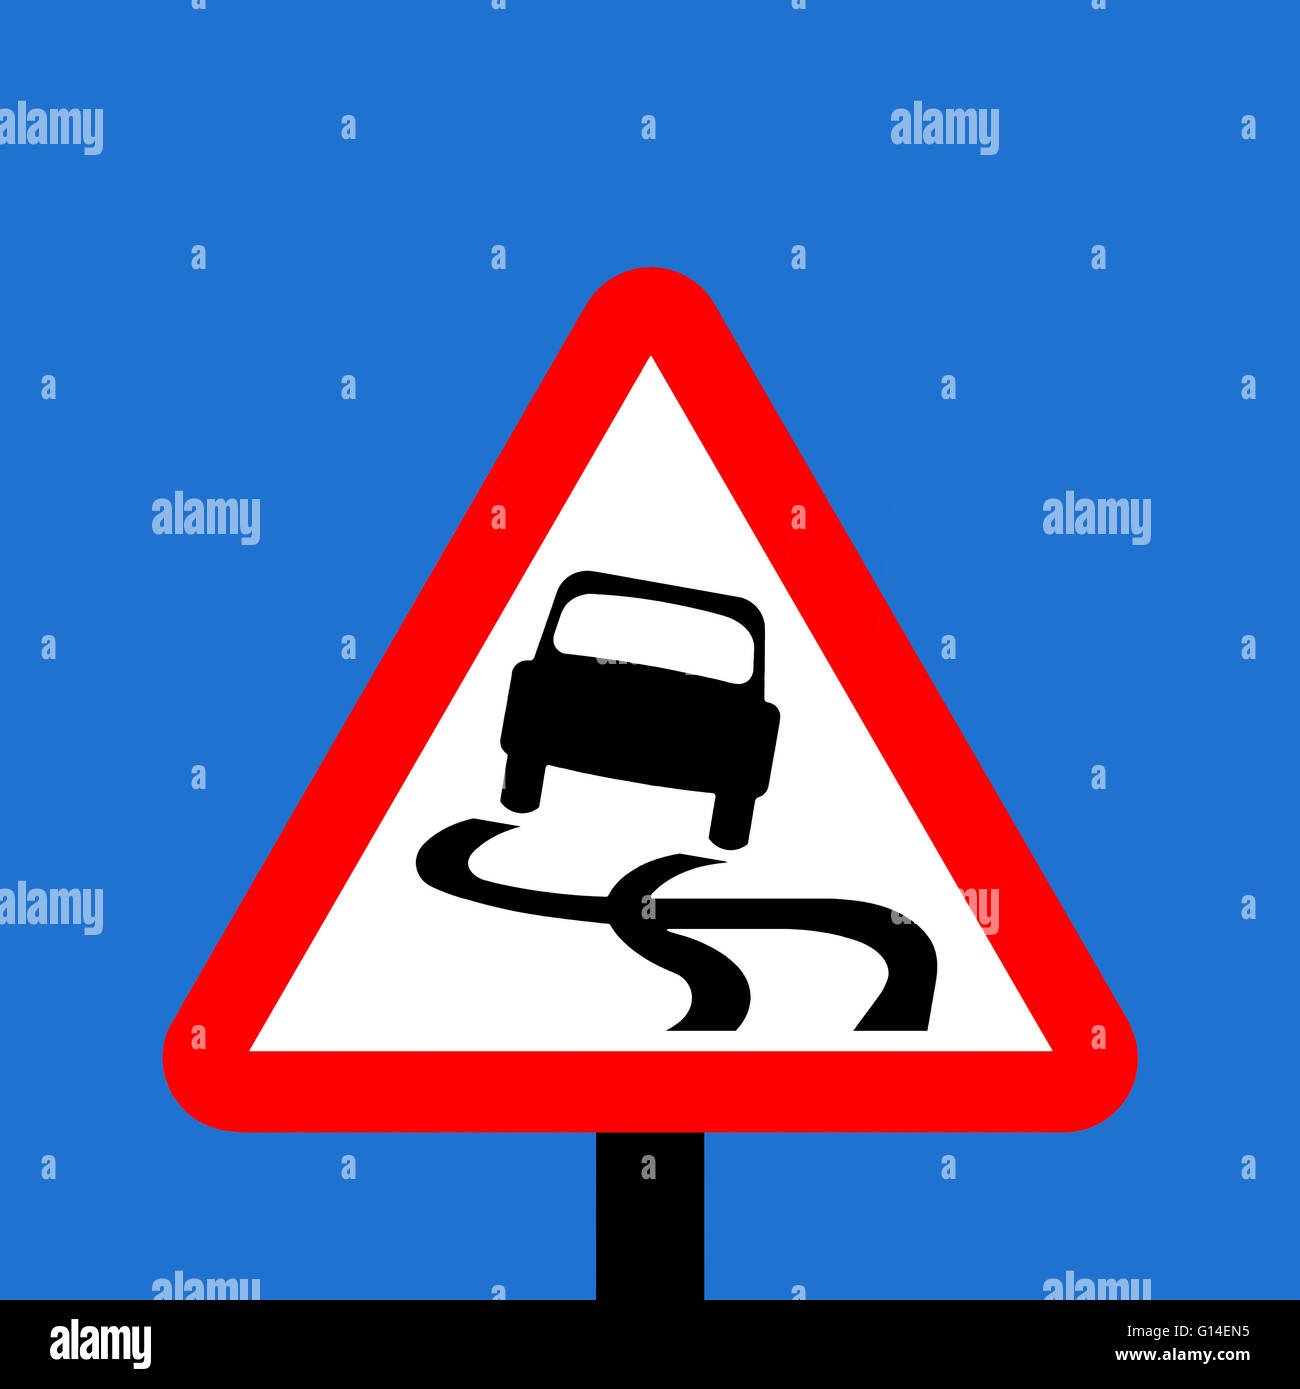 Warning triangle Slippery road traffic sign - Stock Image